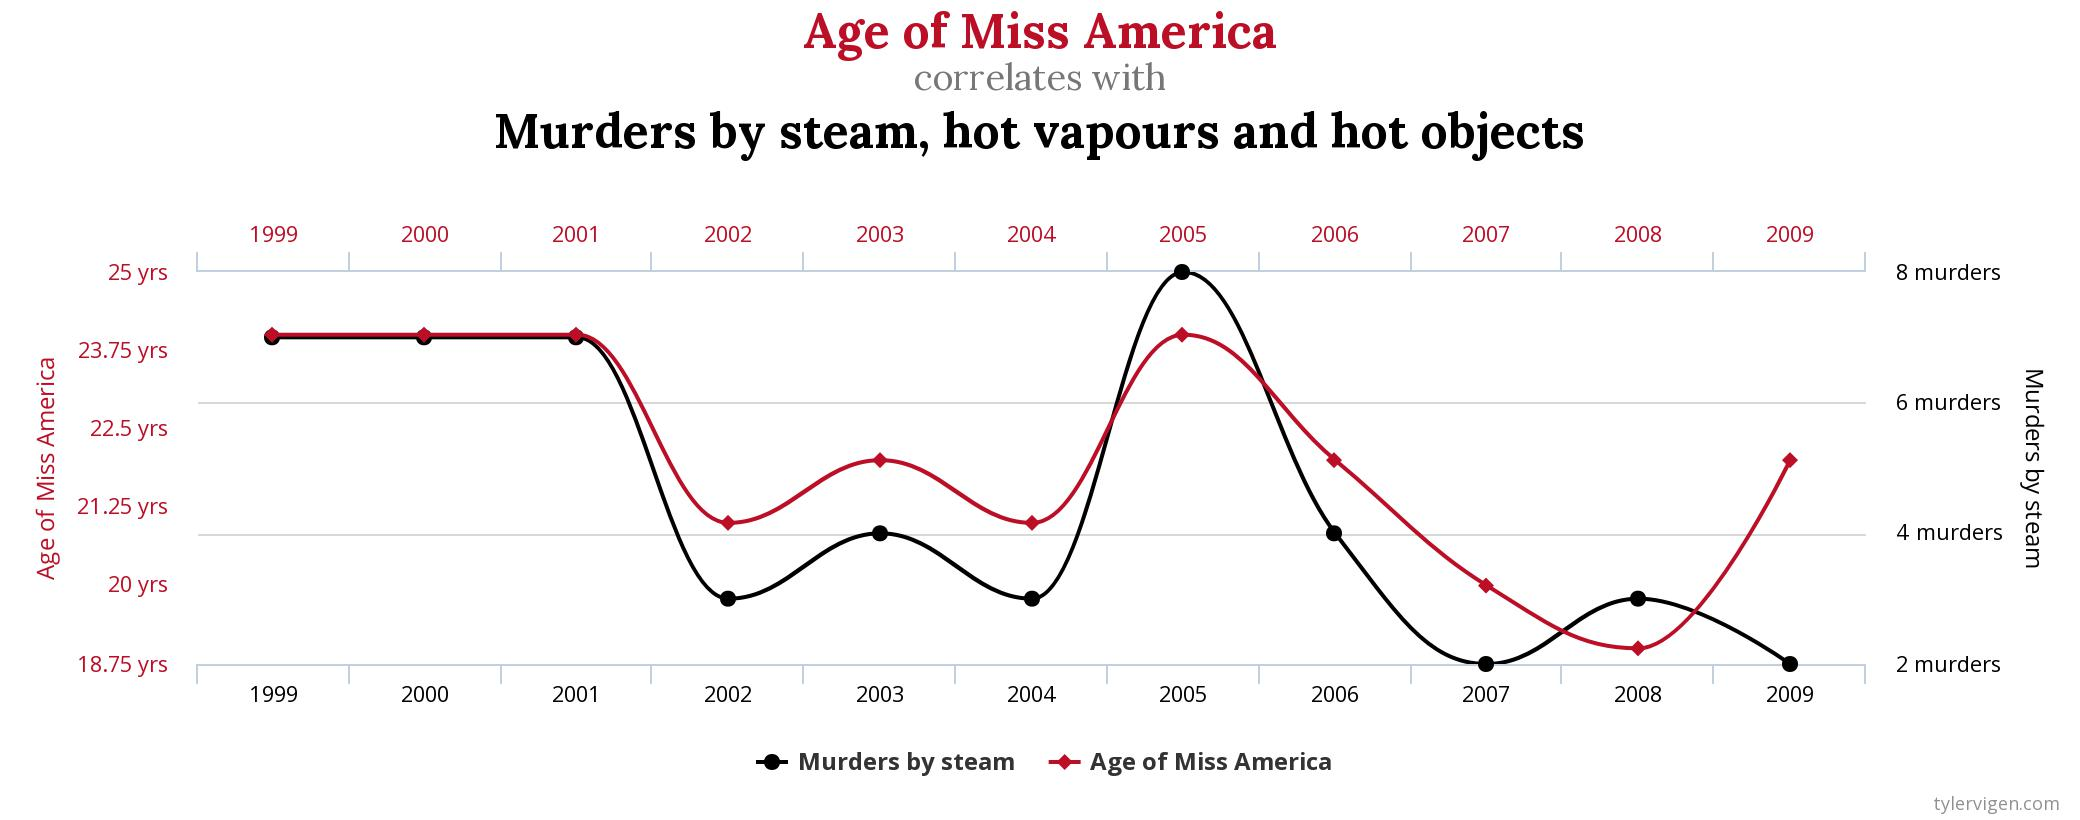 Age of Miss America vs death by steam graph